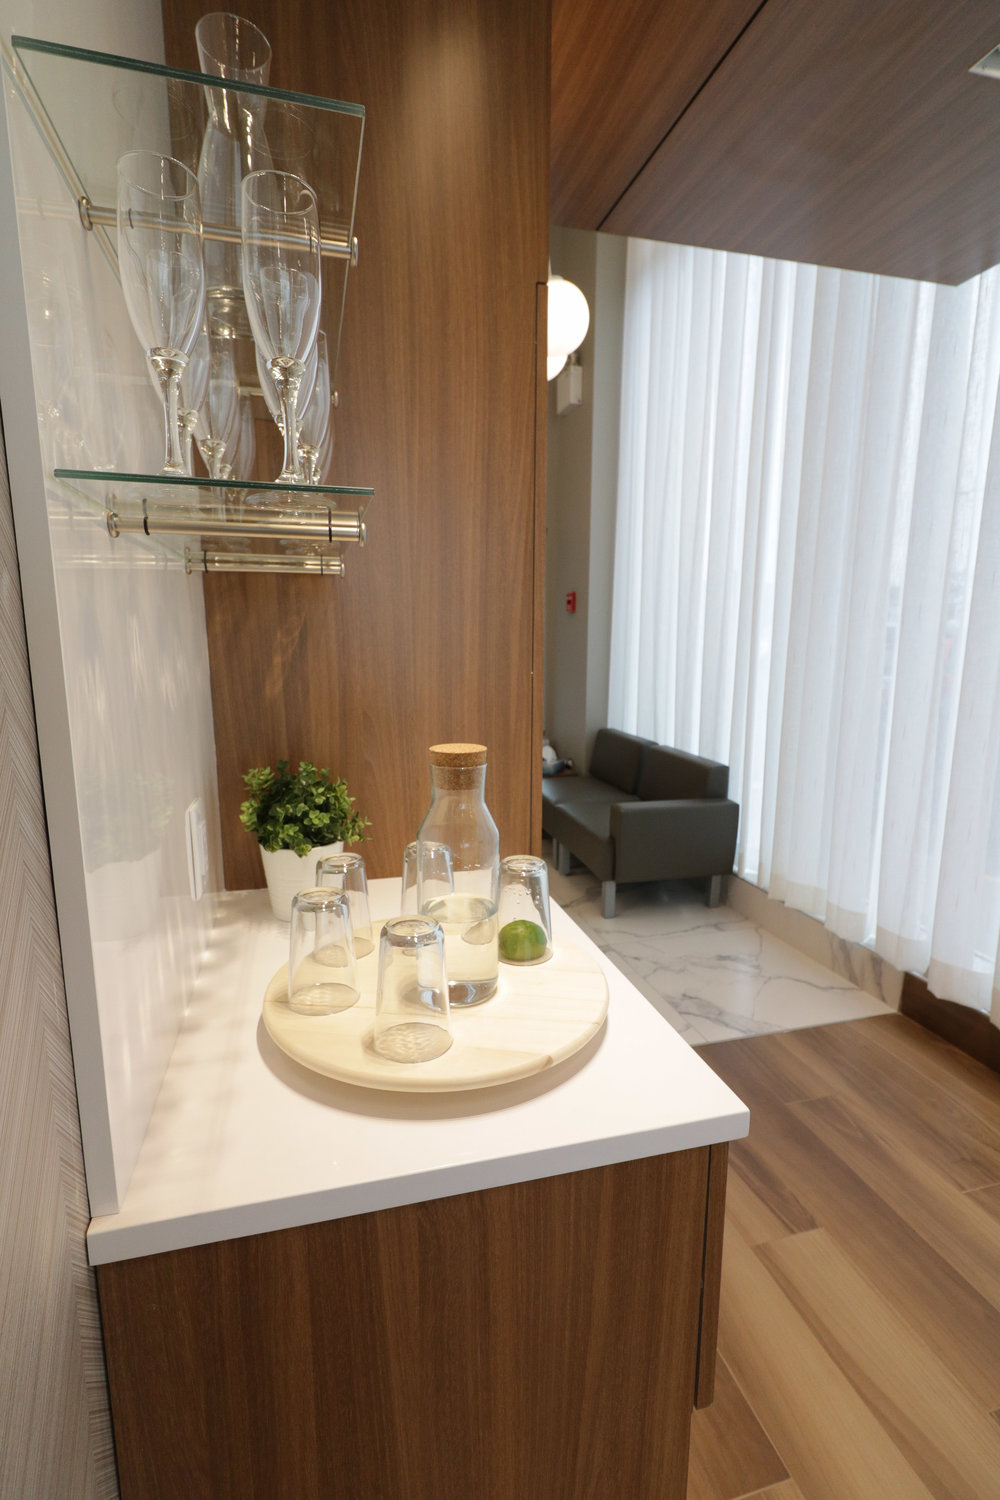 Relaxation Station at Portland Street Spa